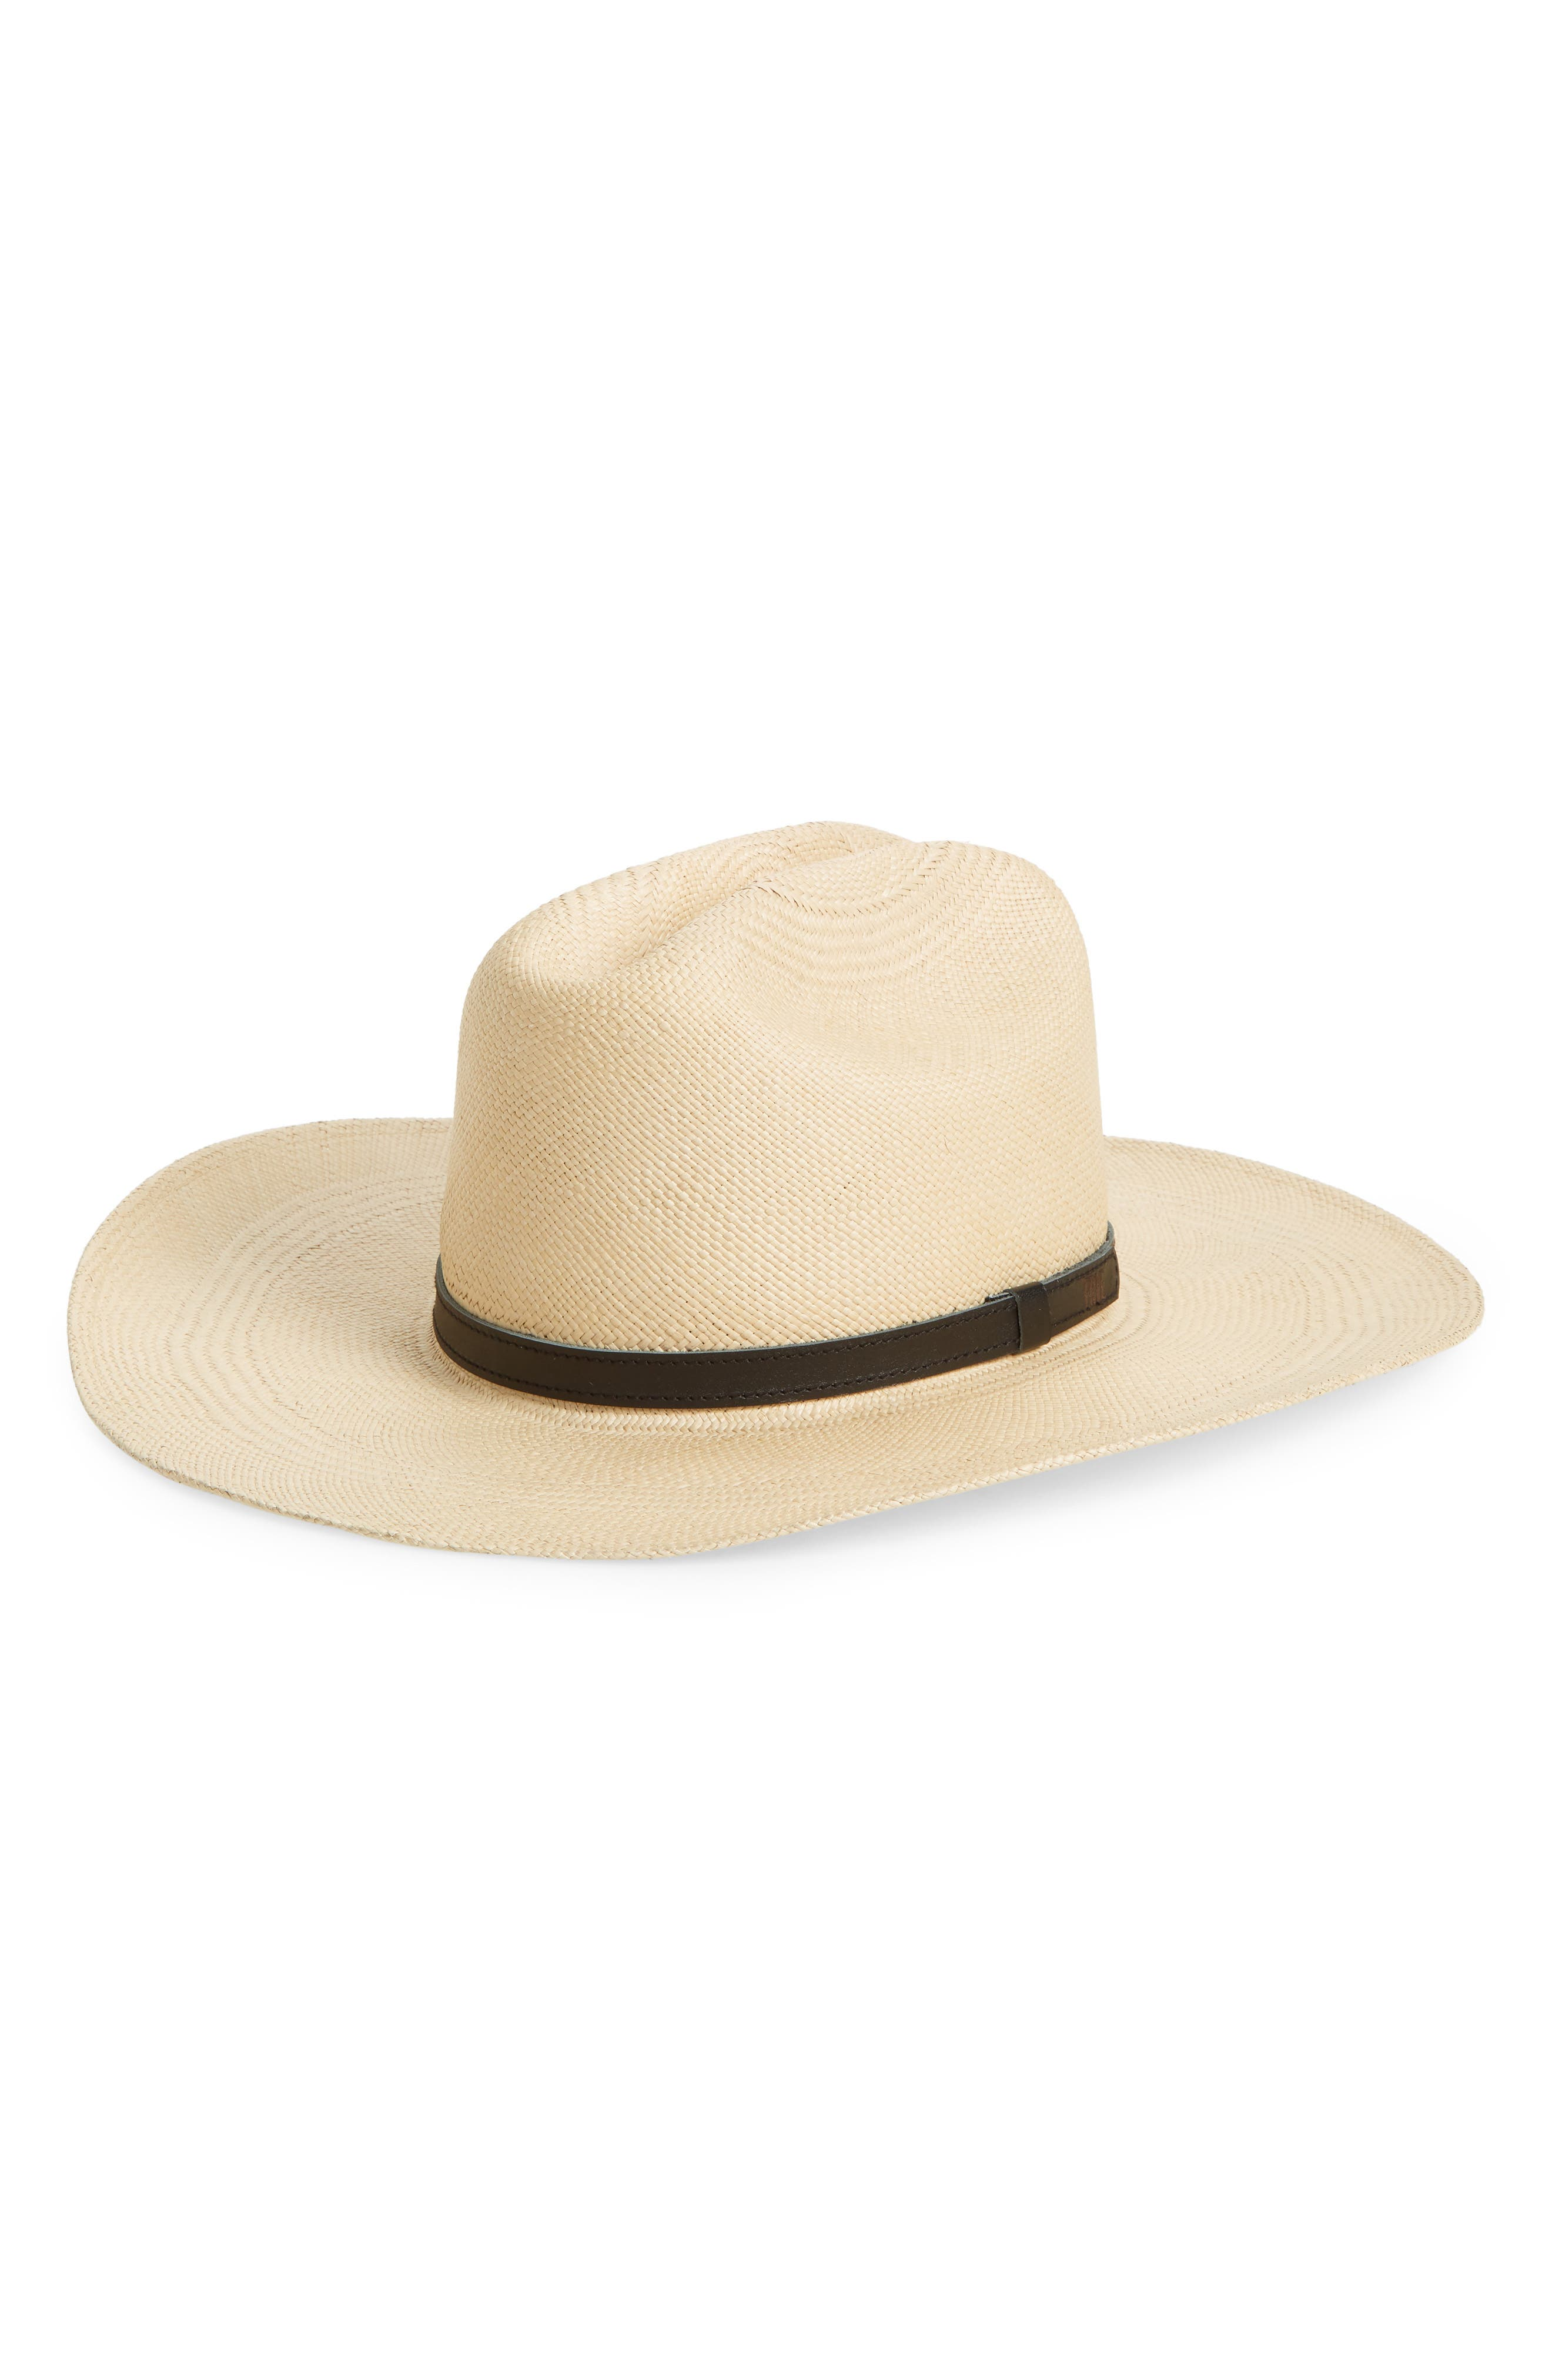 Woven Panama Straw Hat,                             Main thumbnail 1, color,                             TANNED